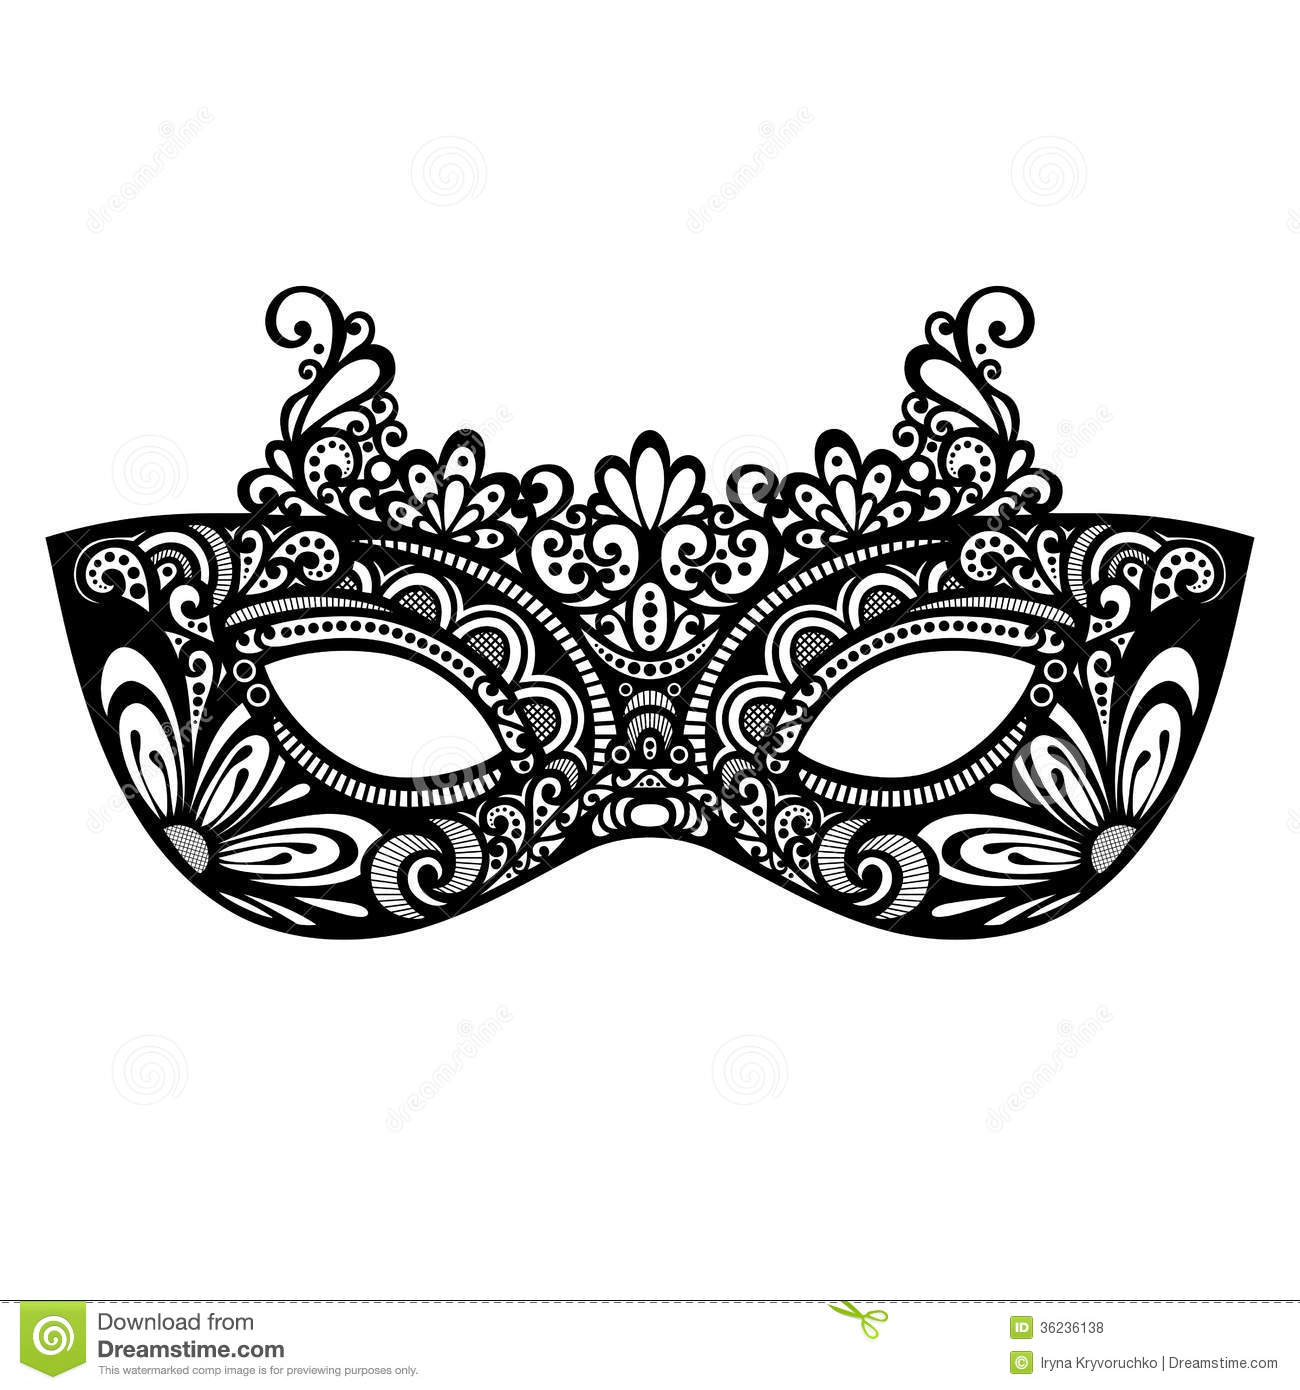 Masquerade Mask Royalty Free Stock Photos Image 36236138